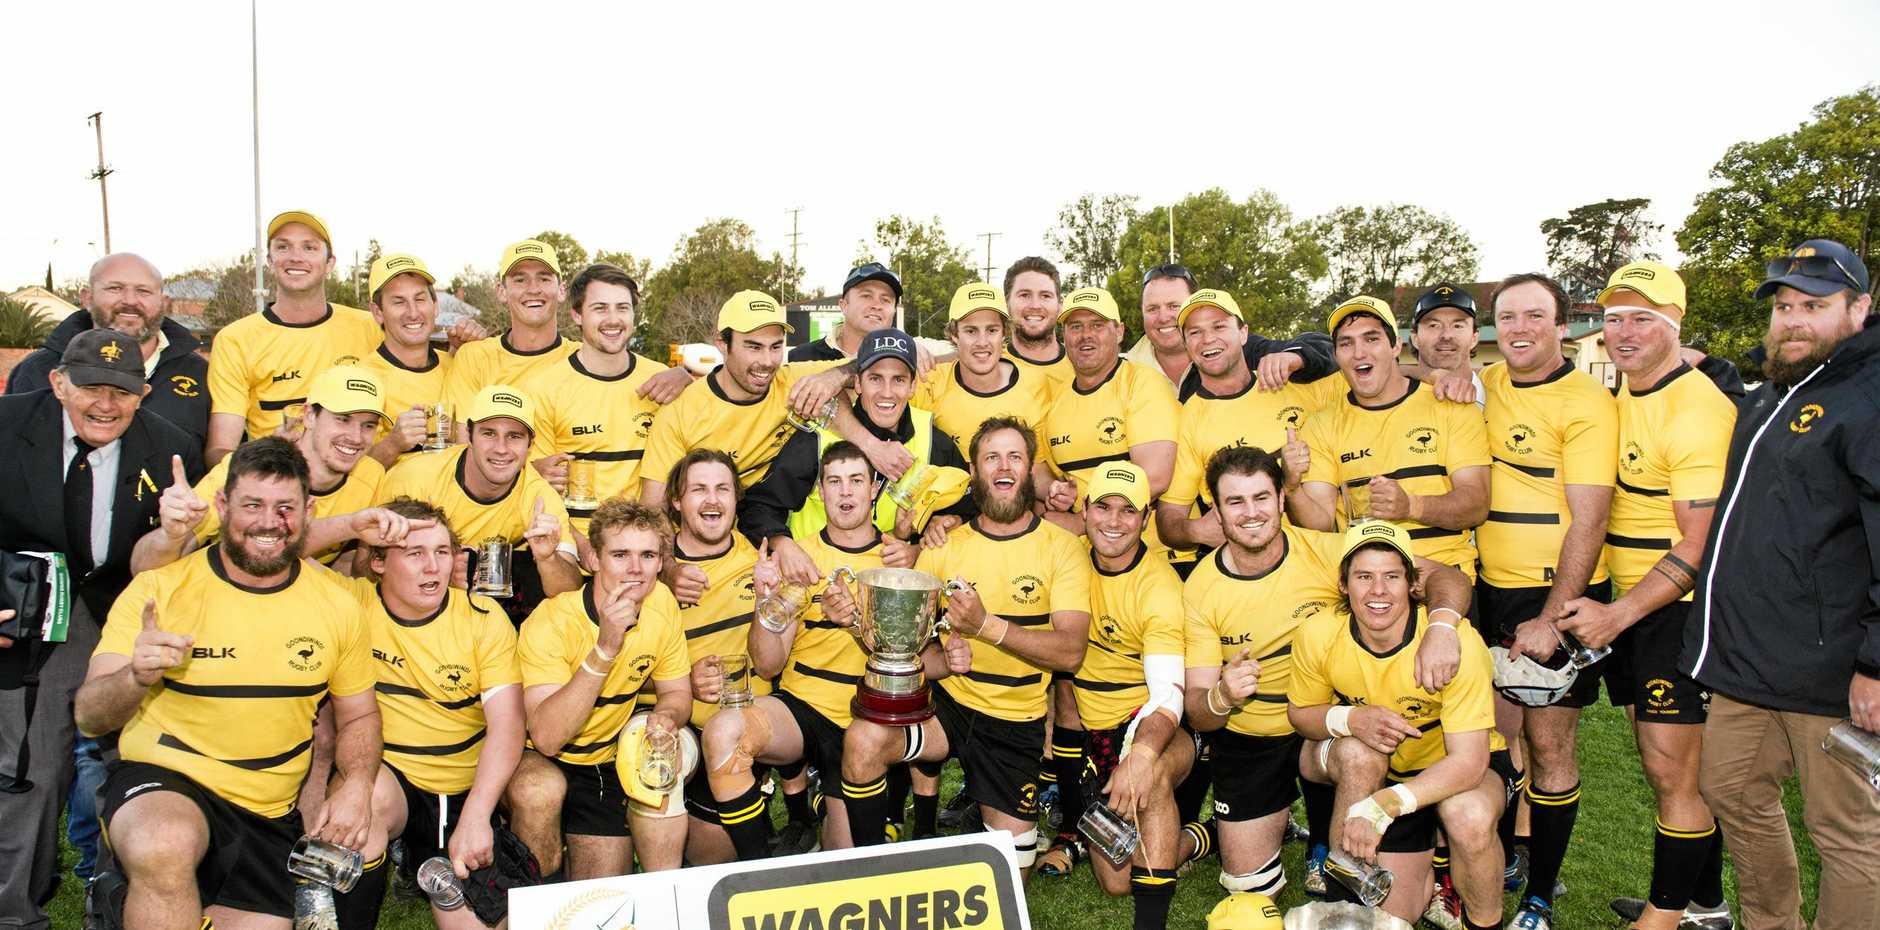 The Goondiwindi Emus celebrate their 2018 Risdon Cup victory over Dalby at Clive Berghofer Stadium.